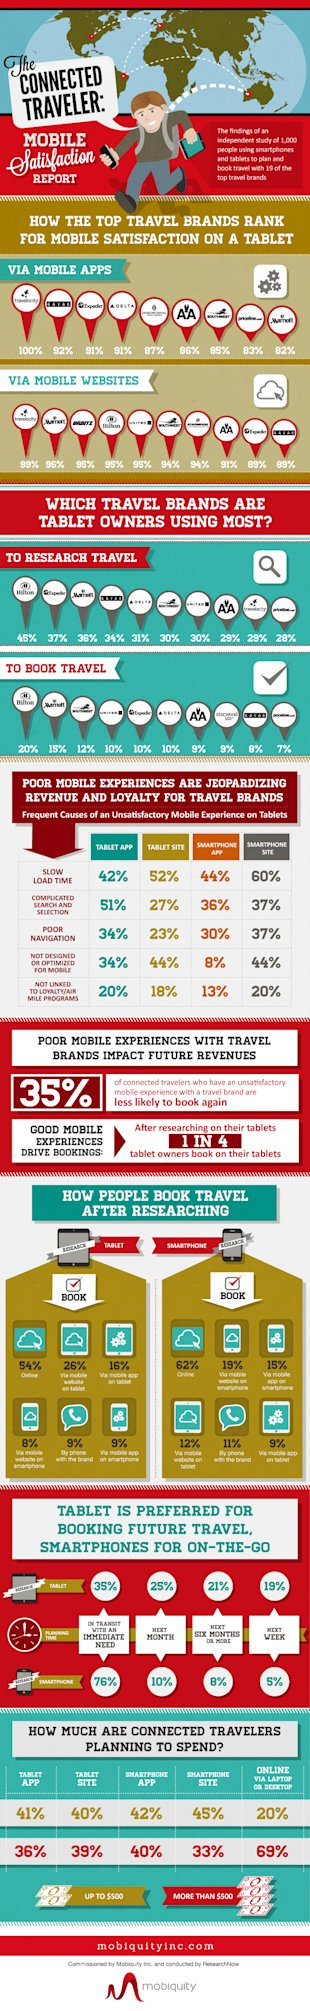 How Top Travel Brands Rank For Mobile Usage [Infographic] image mobiquity mobiletravel